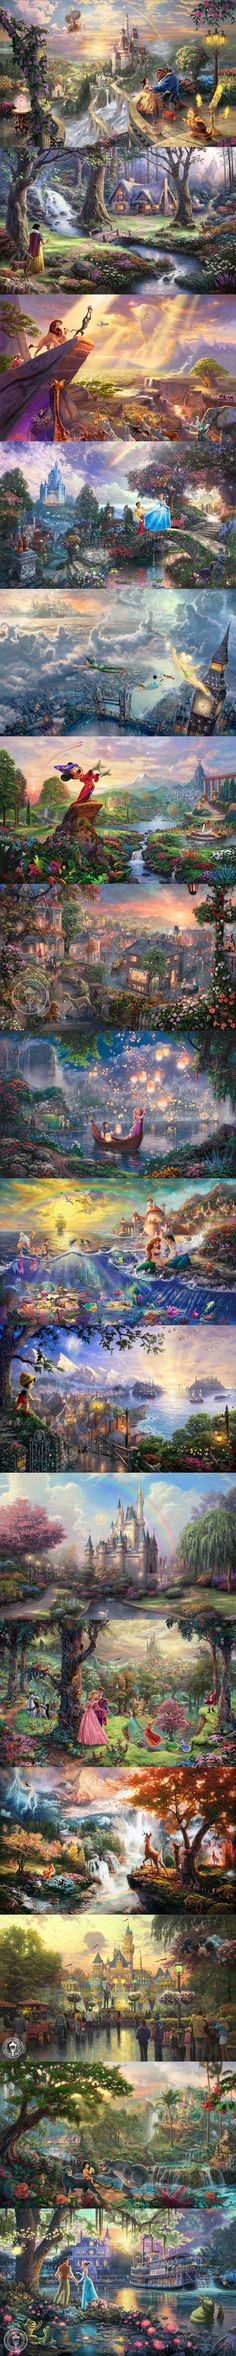 Disney Dreams Collection By Thomas Kinkade. I love Disney and I love Thomas Kinkade so this is the perfect combinations. Disney Pixar, Walt Disney, Cute Disney, Disney And Dreamworks, Disney Magic, Disney Art, Disney Movies, Disney Stuff, Bambi Disney